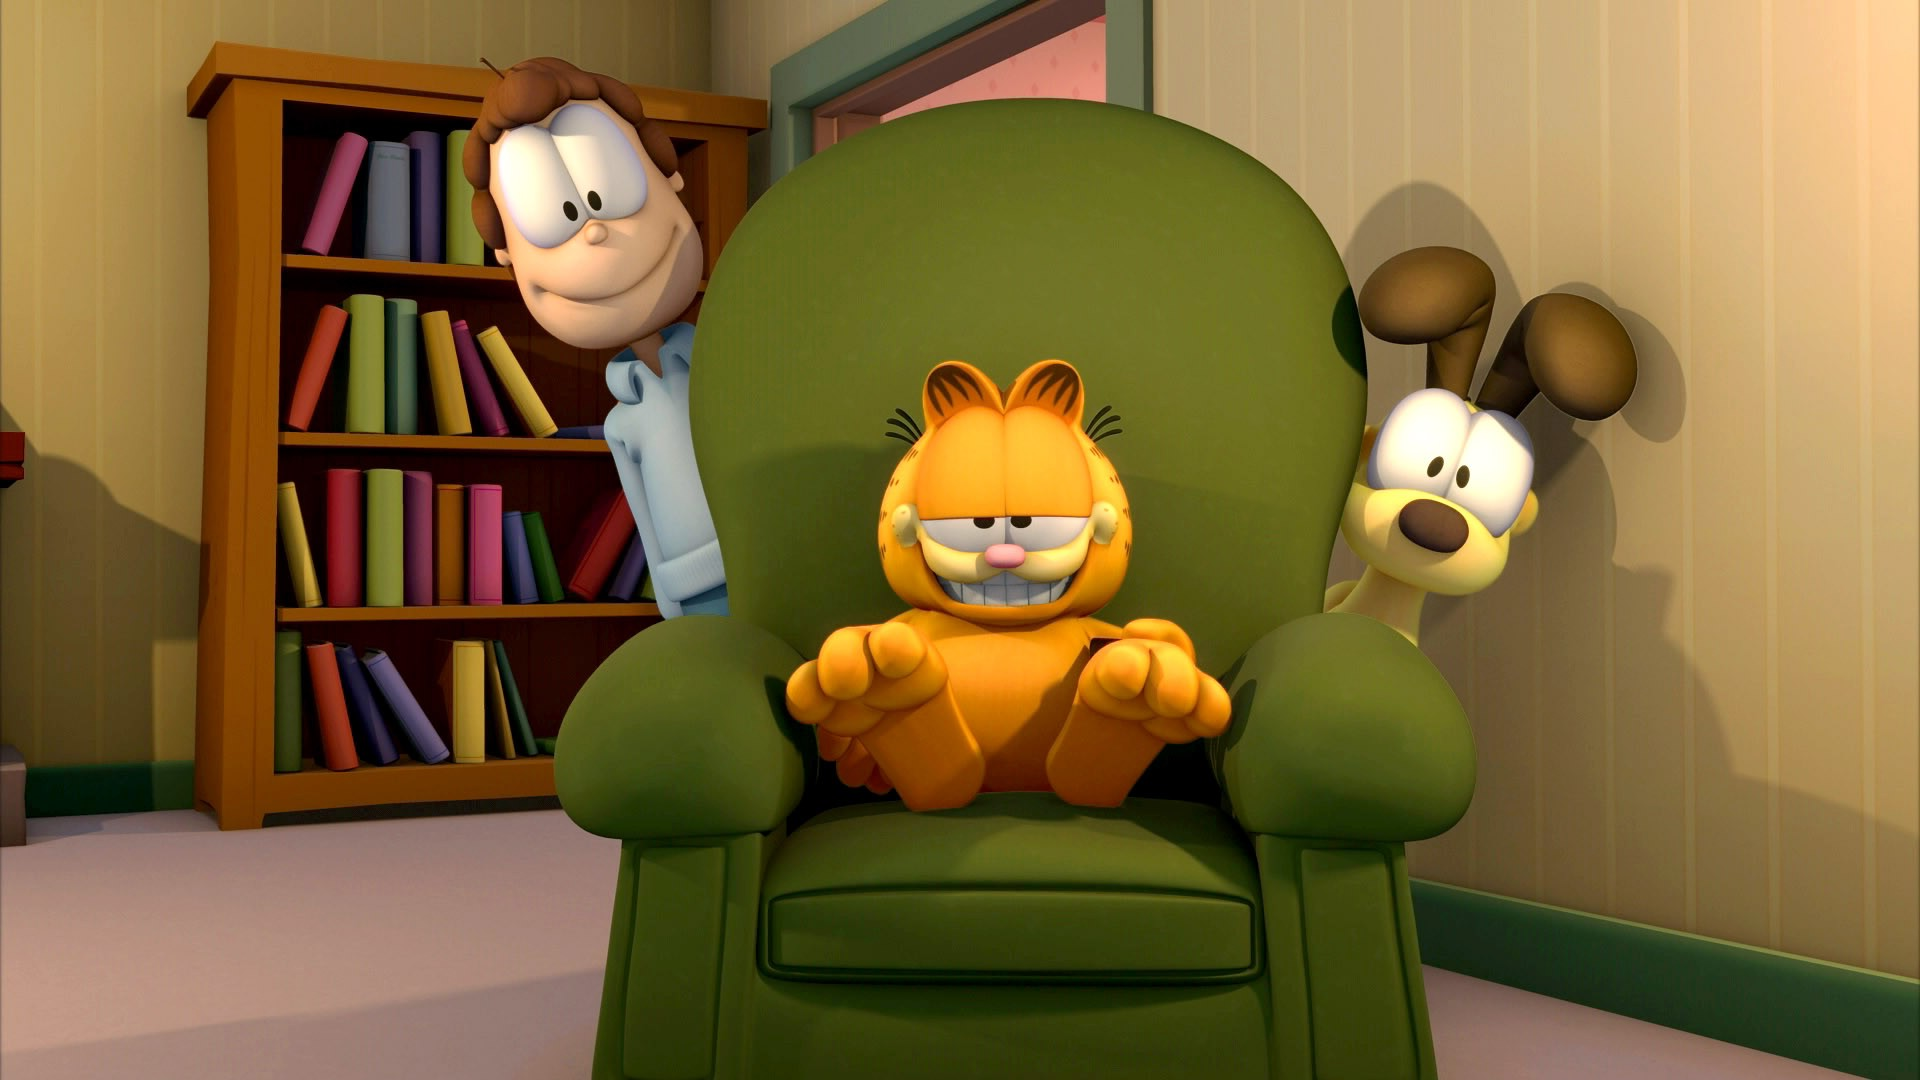 Tgdb Browse Game Garfield Gets Real